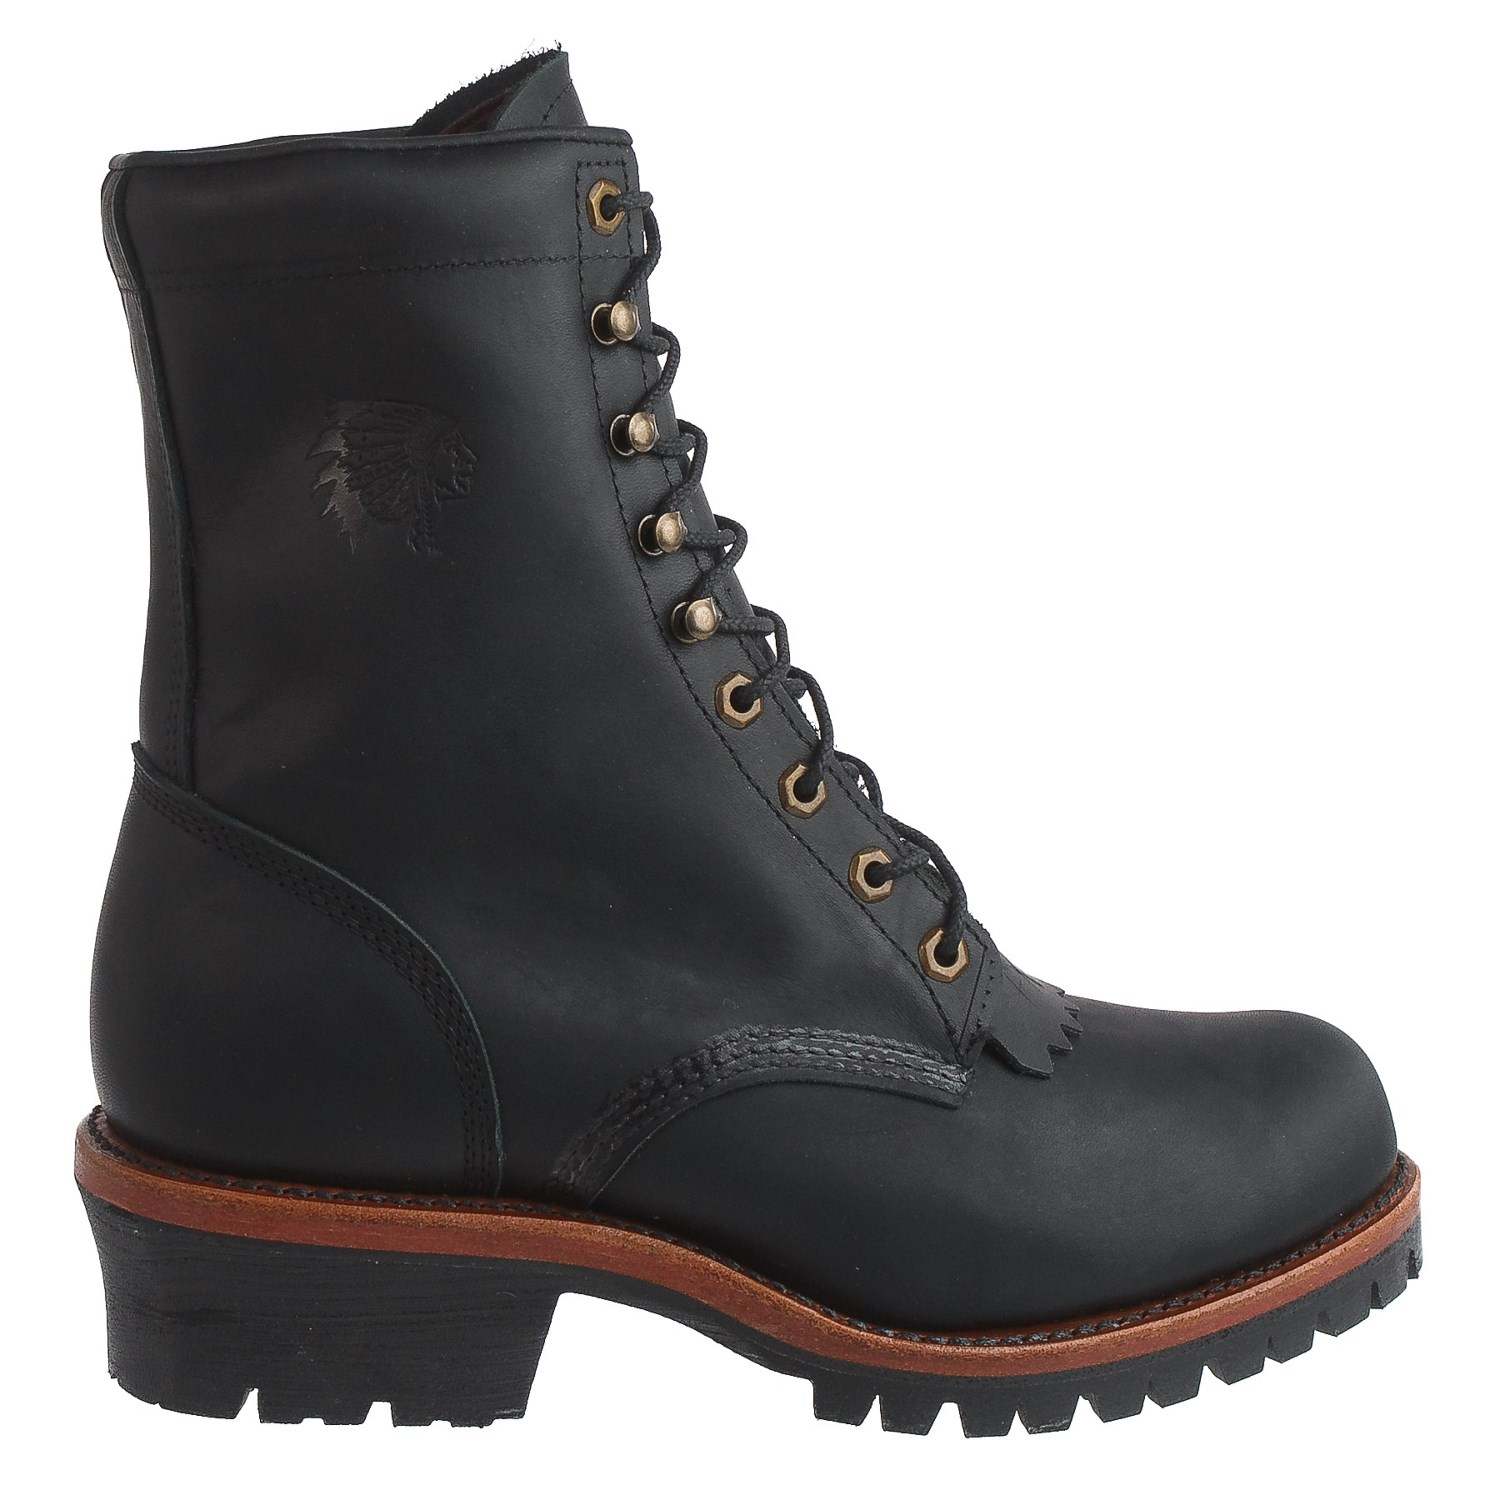 Chippewa Odessa Lace Up Boots For Men Save 42